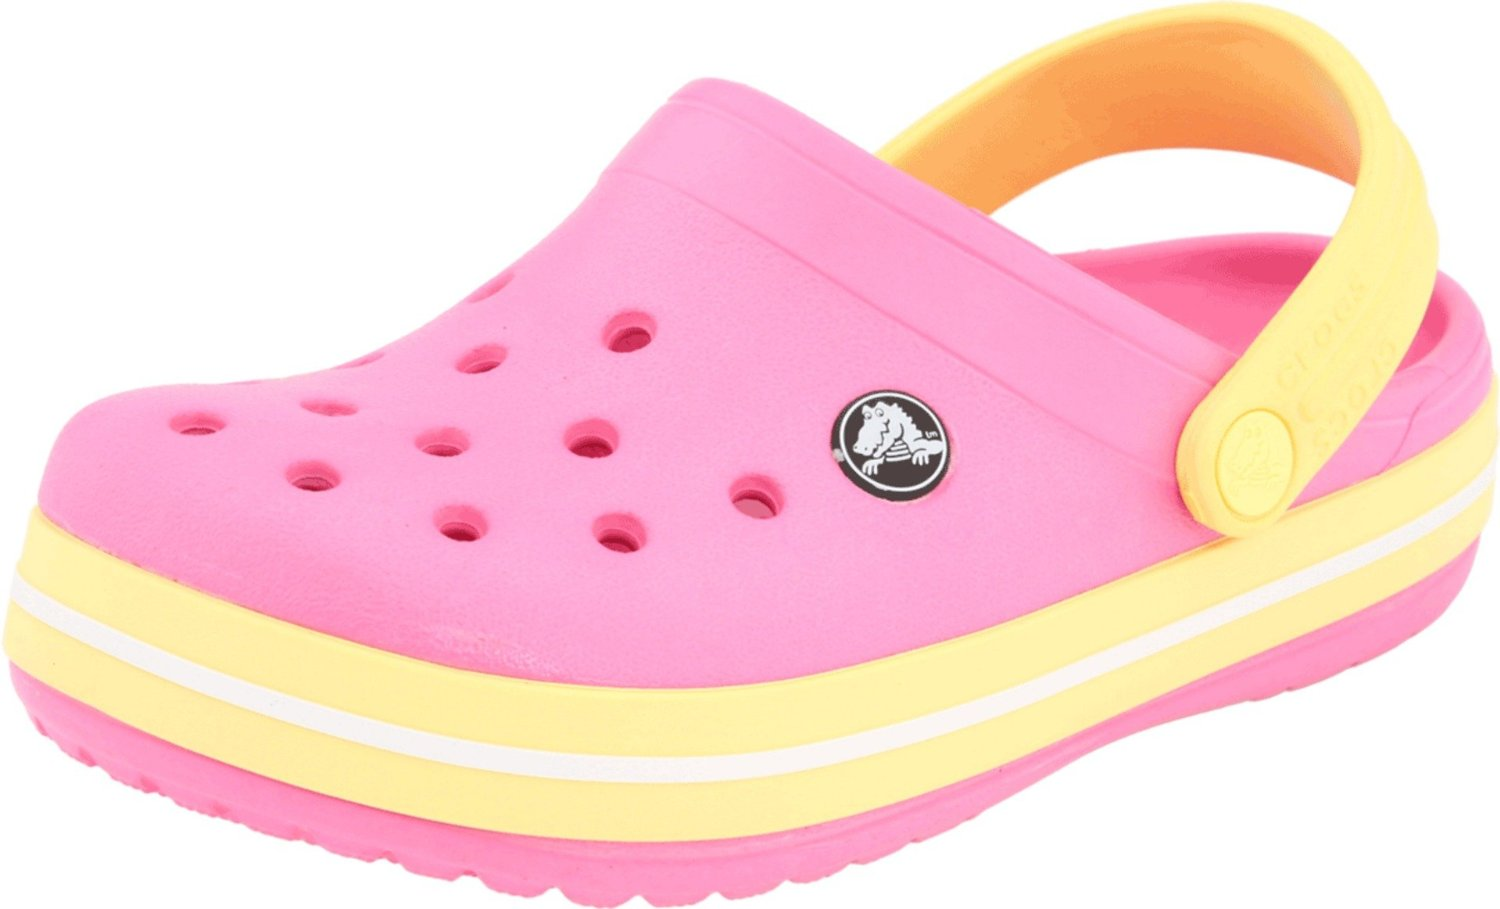 af013759d10ee Your little one will stay secure thanks to the back strap on this kids  shoe.  Classic and colorful